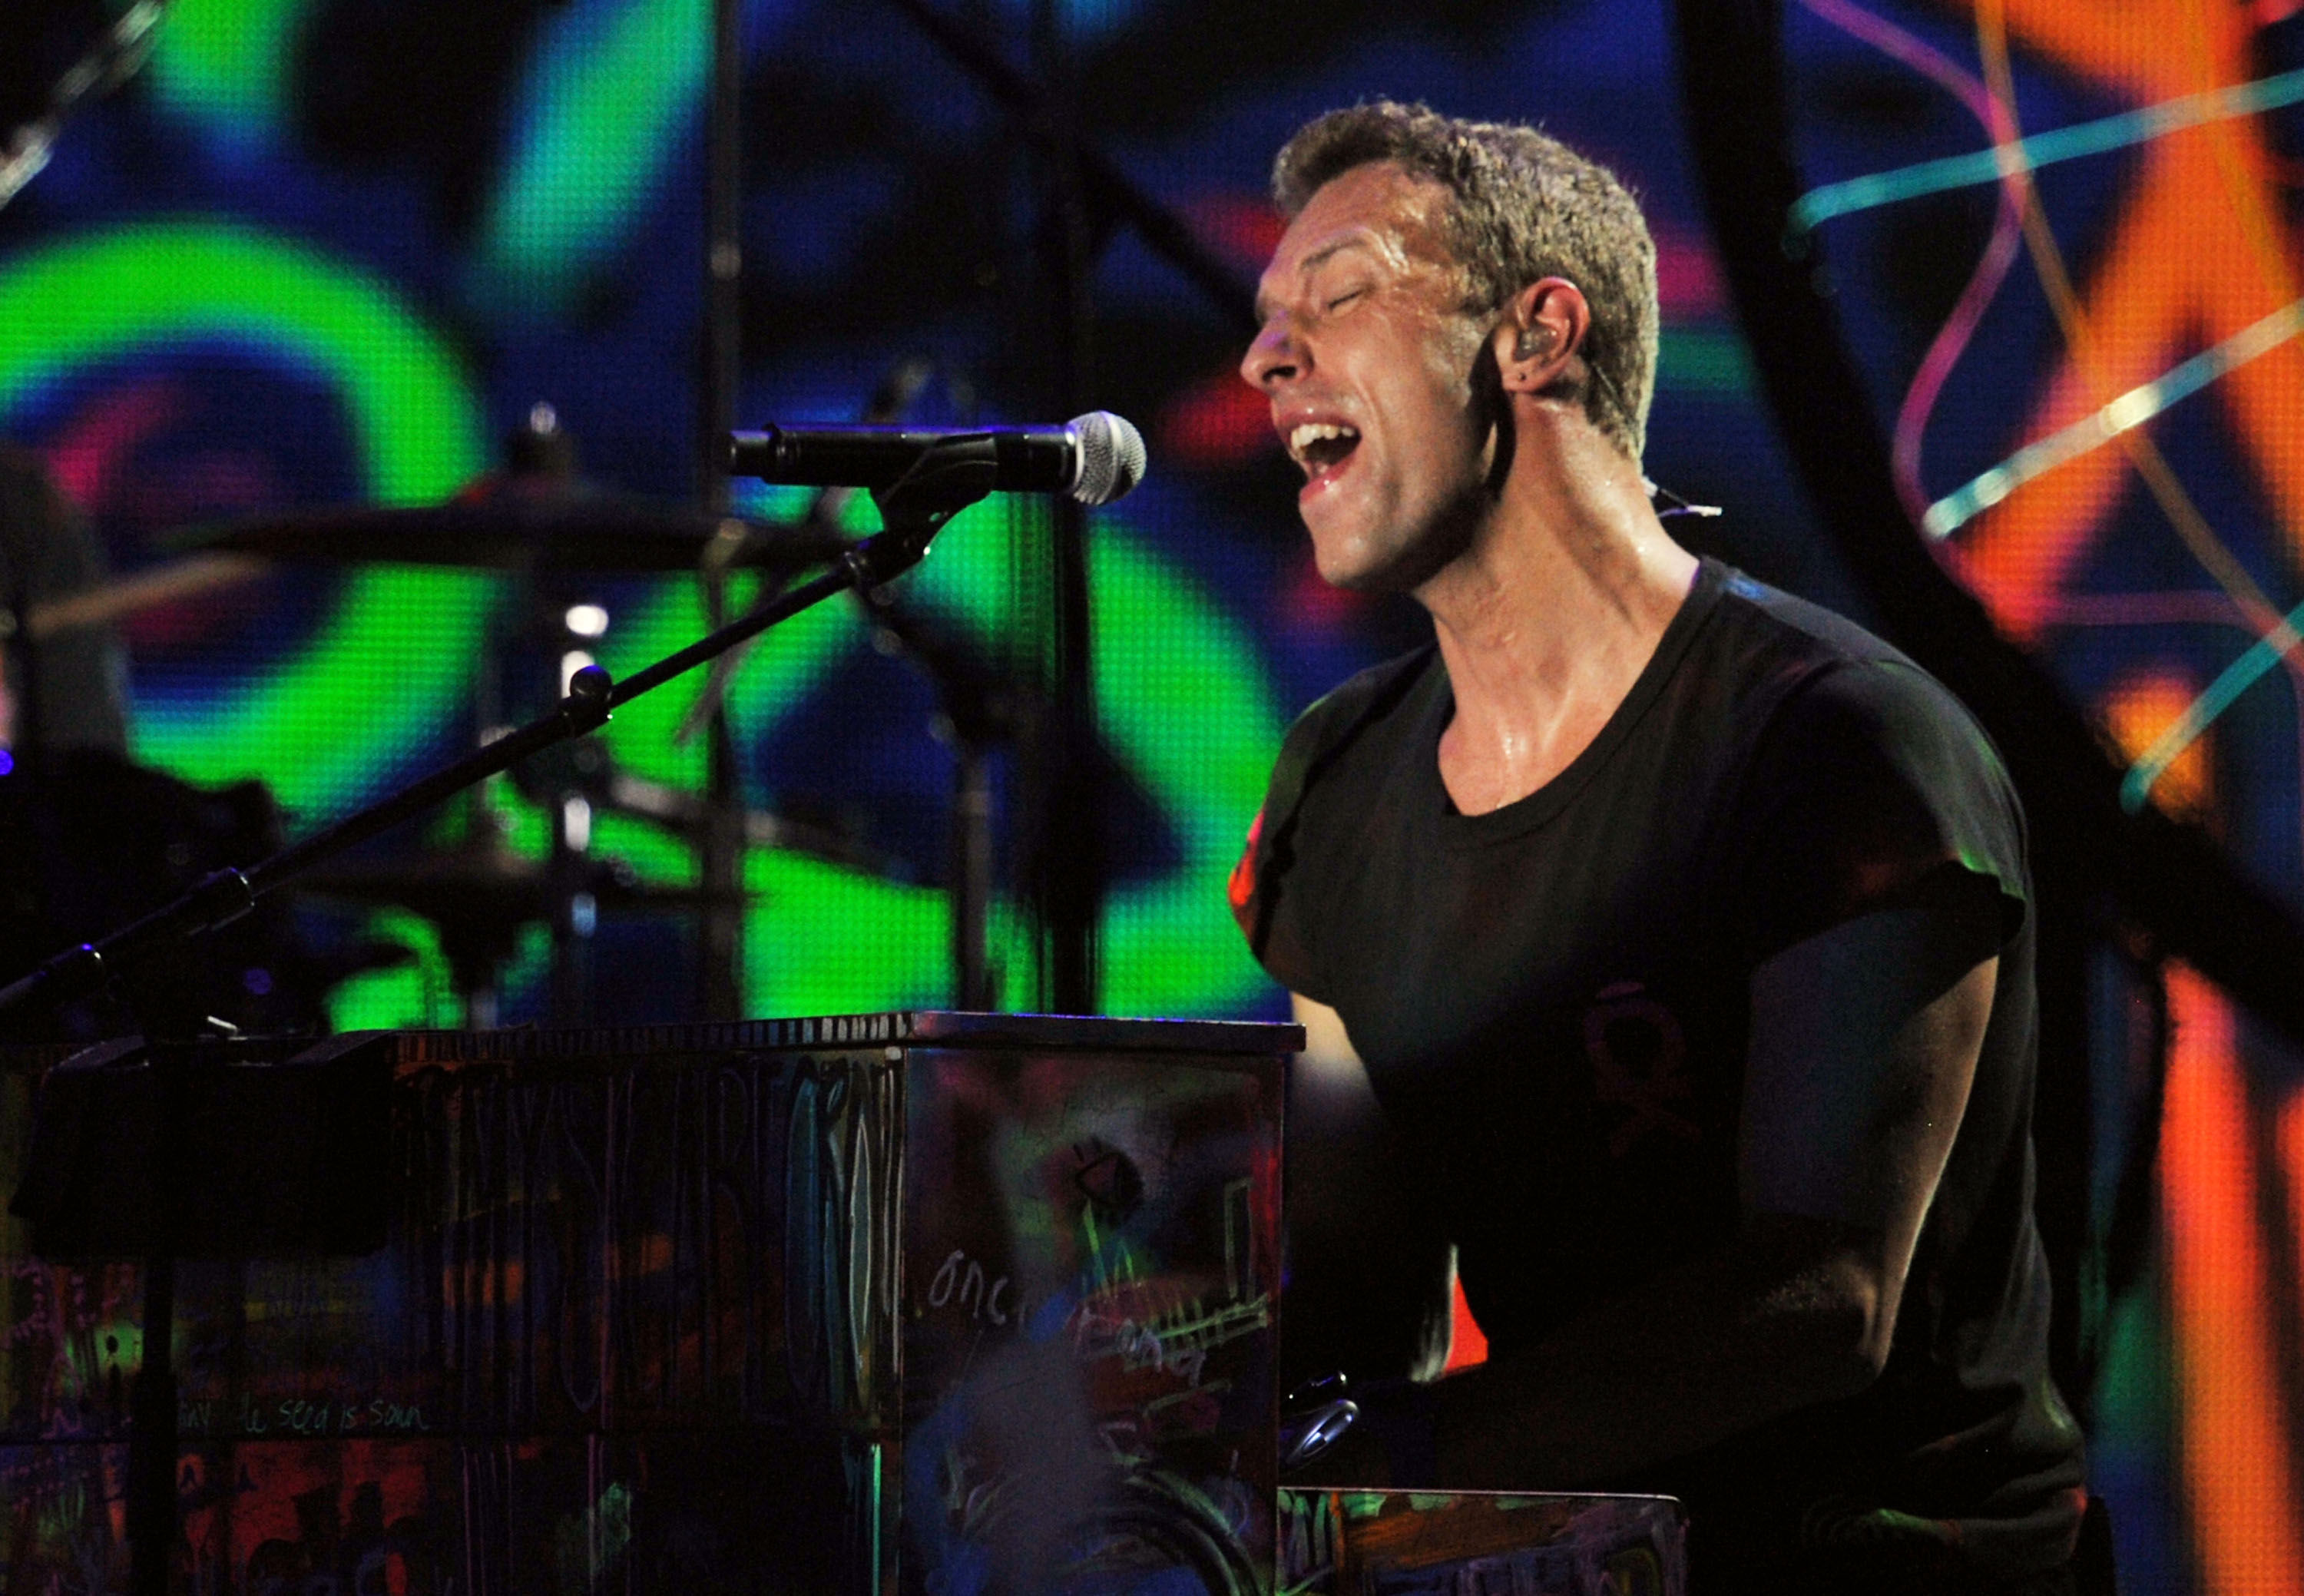 Chris Martin played the piano during Col